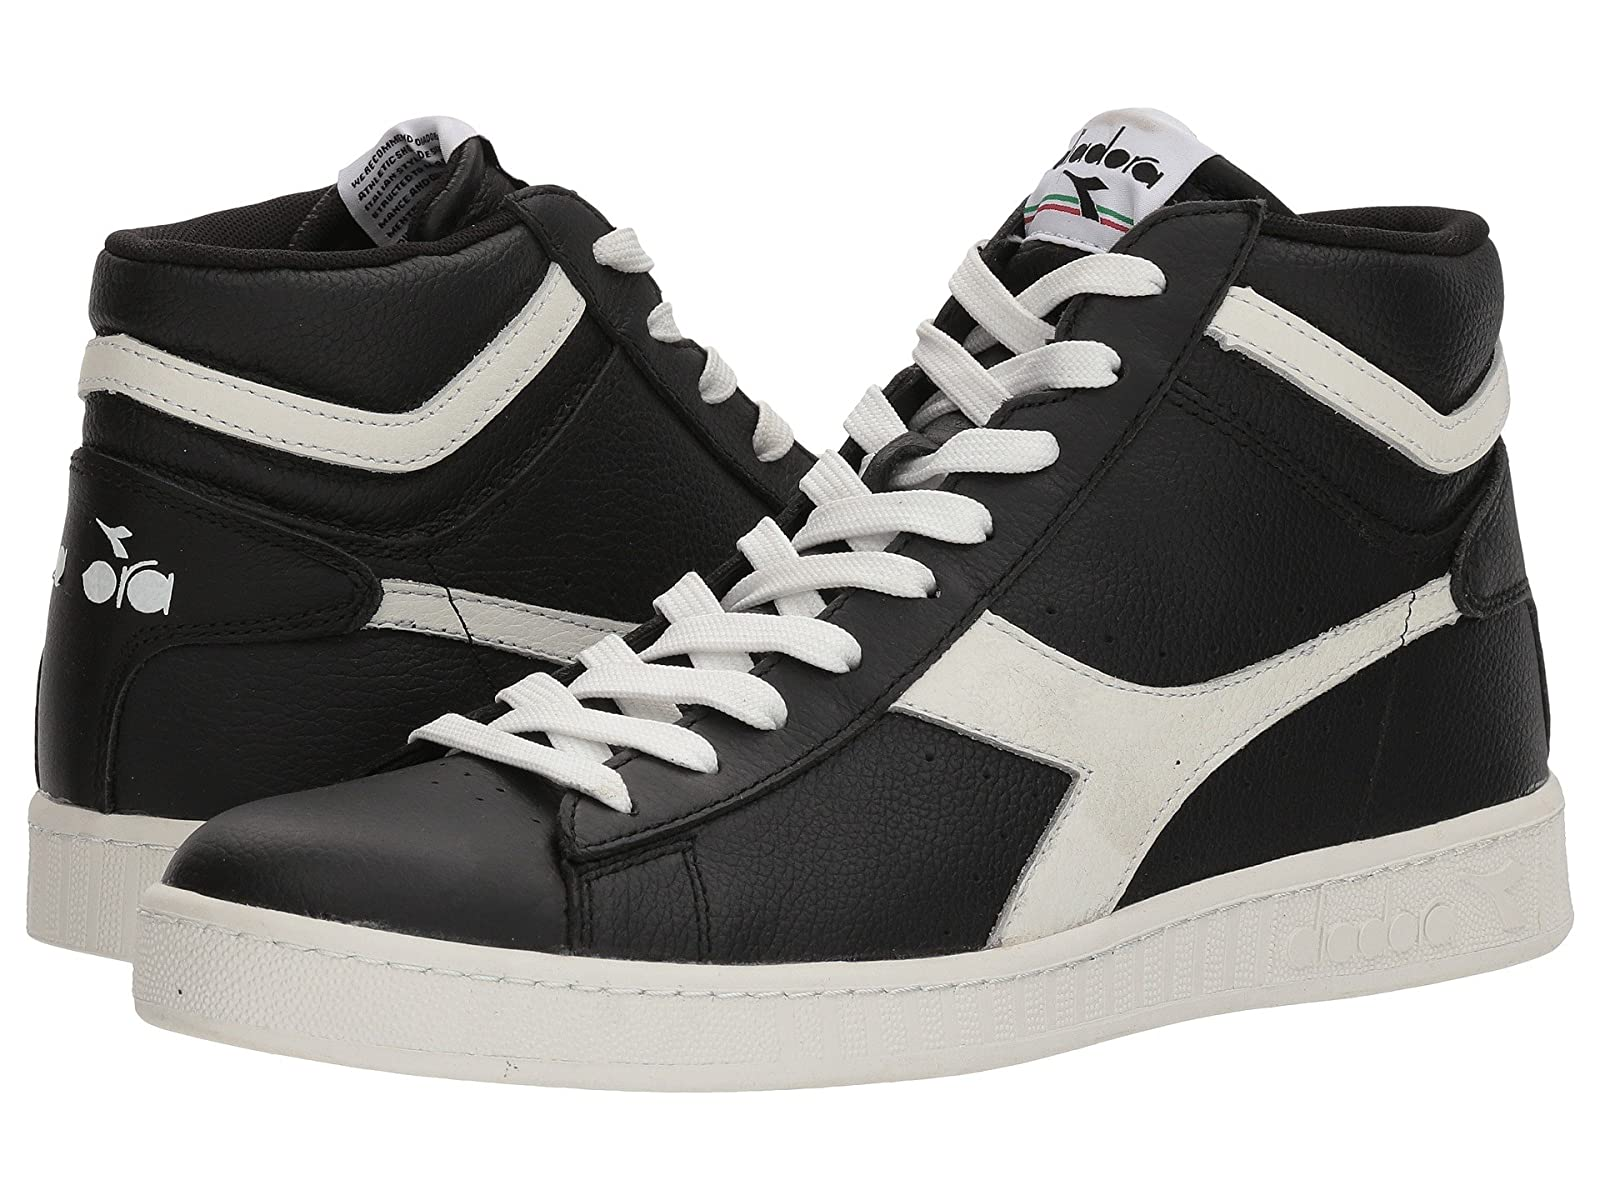 Diadora Game L HighCheap and distinctive eye-catching shoes